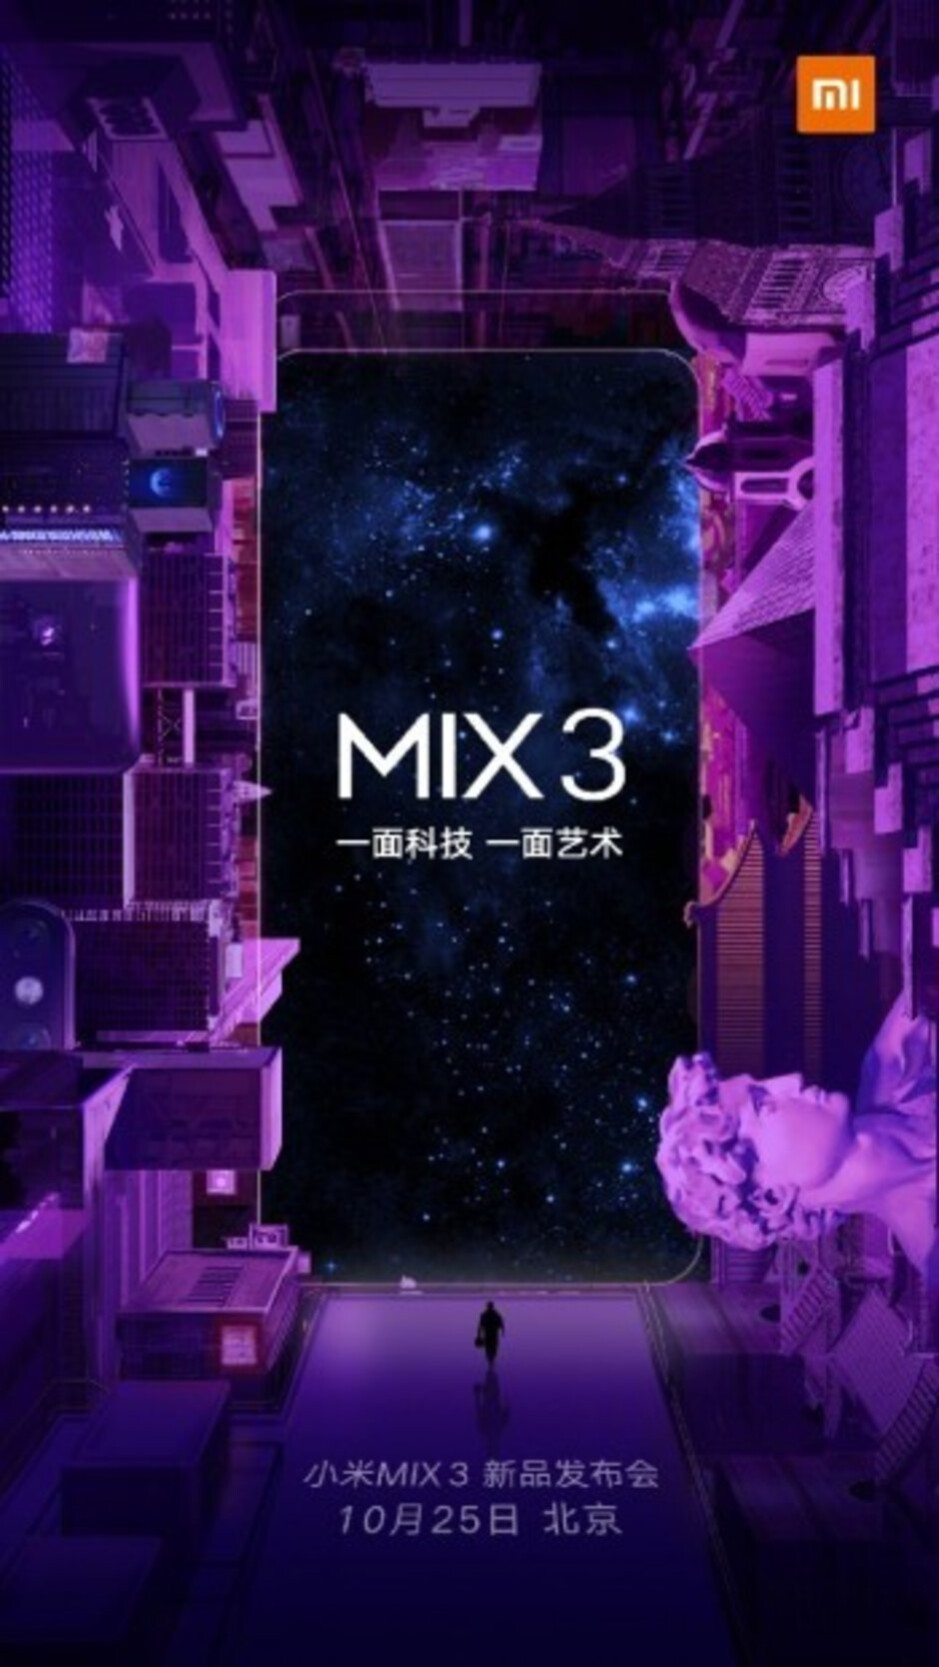 Latest Mi Mix 3 teaser image - Xiaomi Mi Mix 3 and its sliding screen are coming on October 25